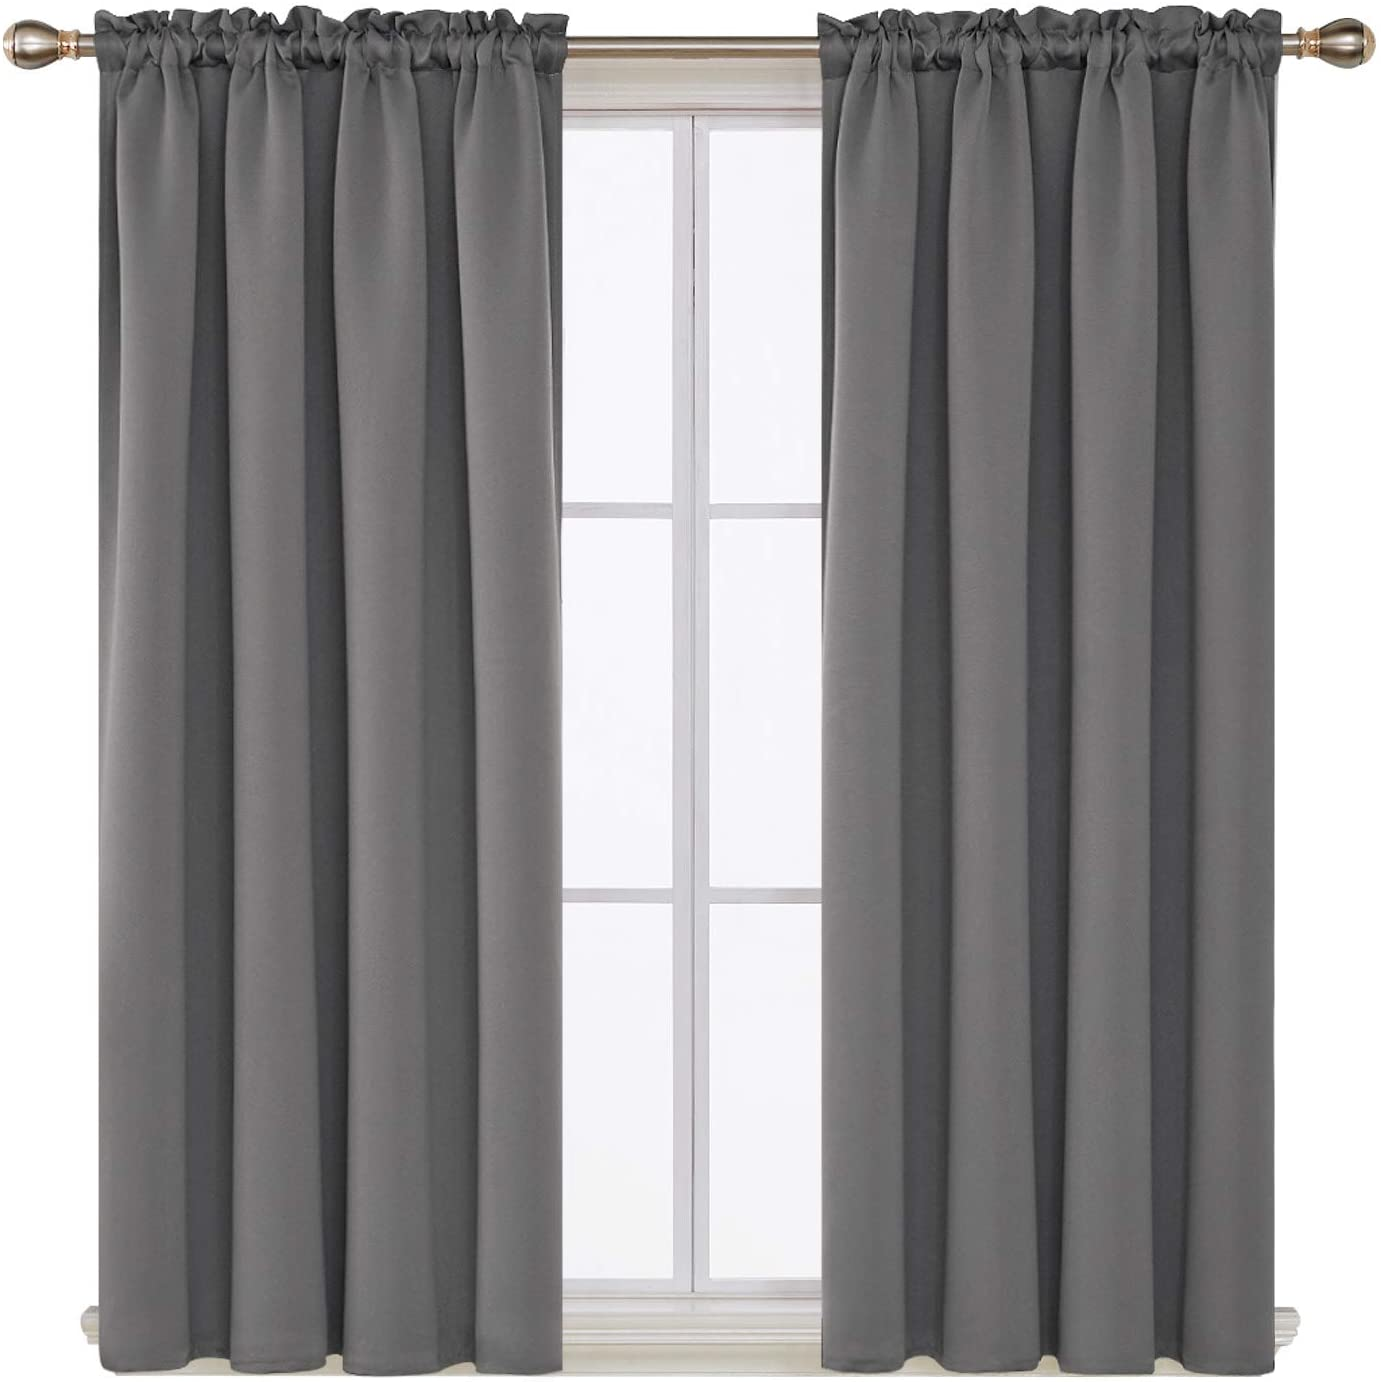 Deconovo Light Grey Blackout Curtains Rod Pocket Curtain Panels Thermal Insulated Curtains For Nursery 52w X 45l Inch 2 Panels Walmart Com Walmart Com